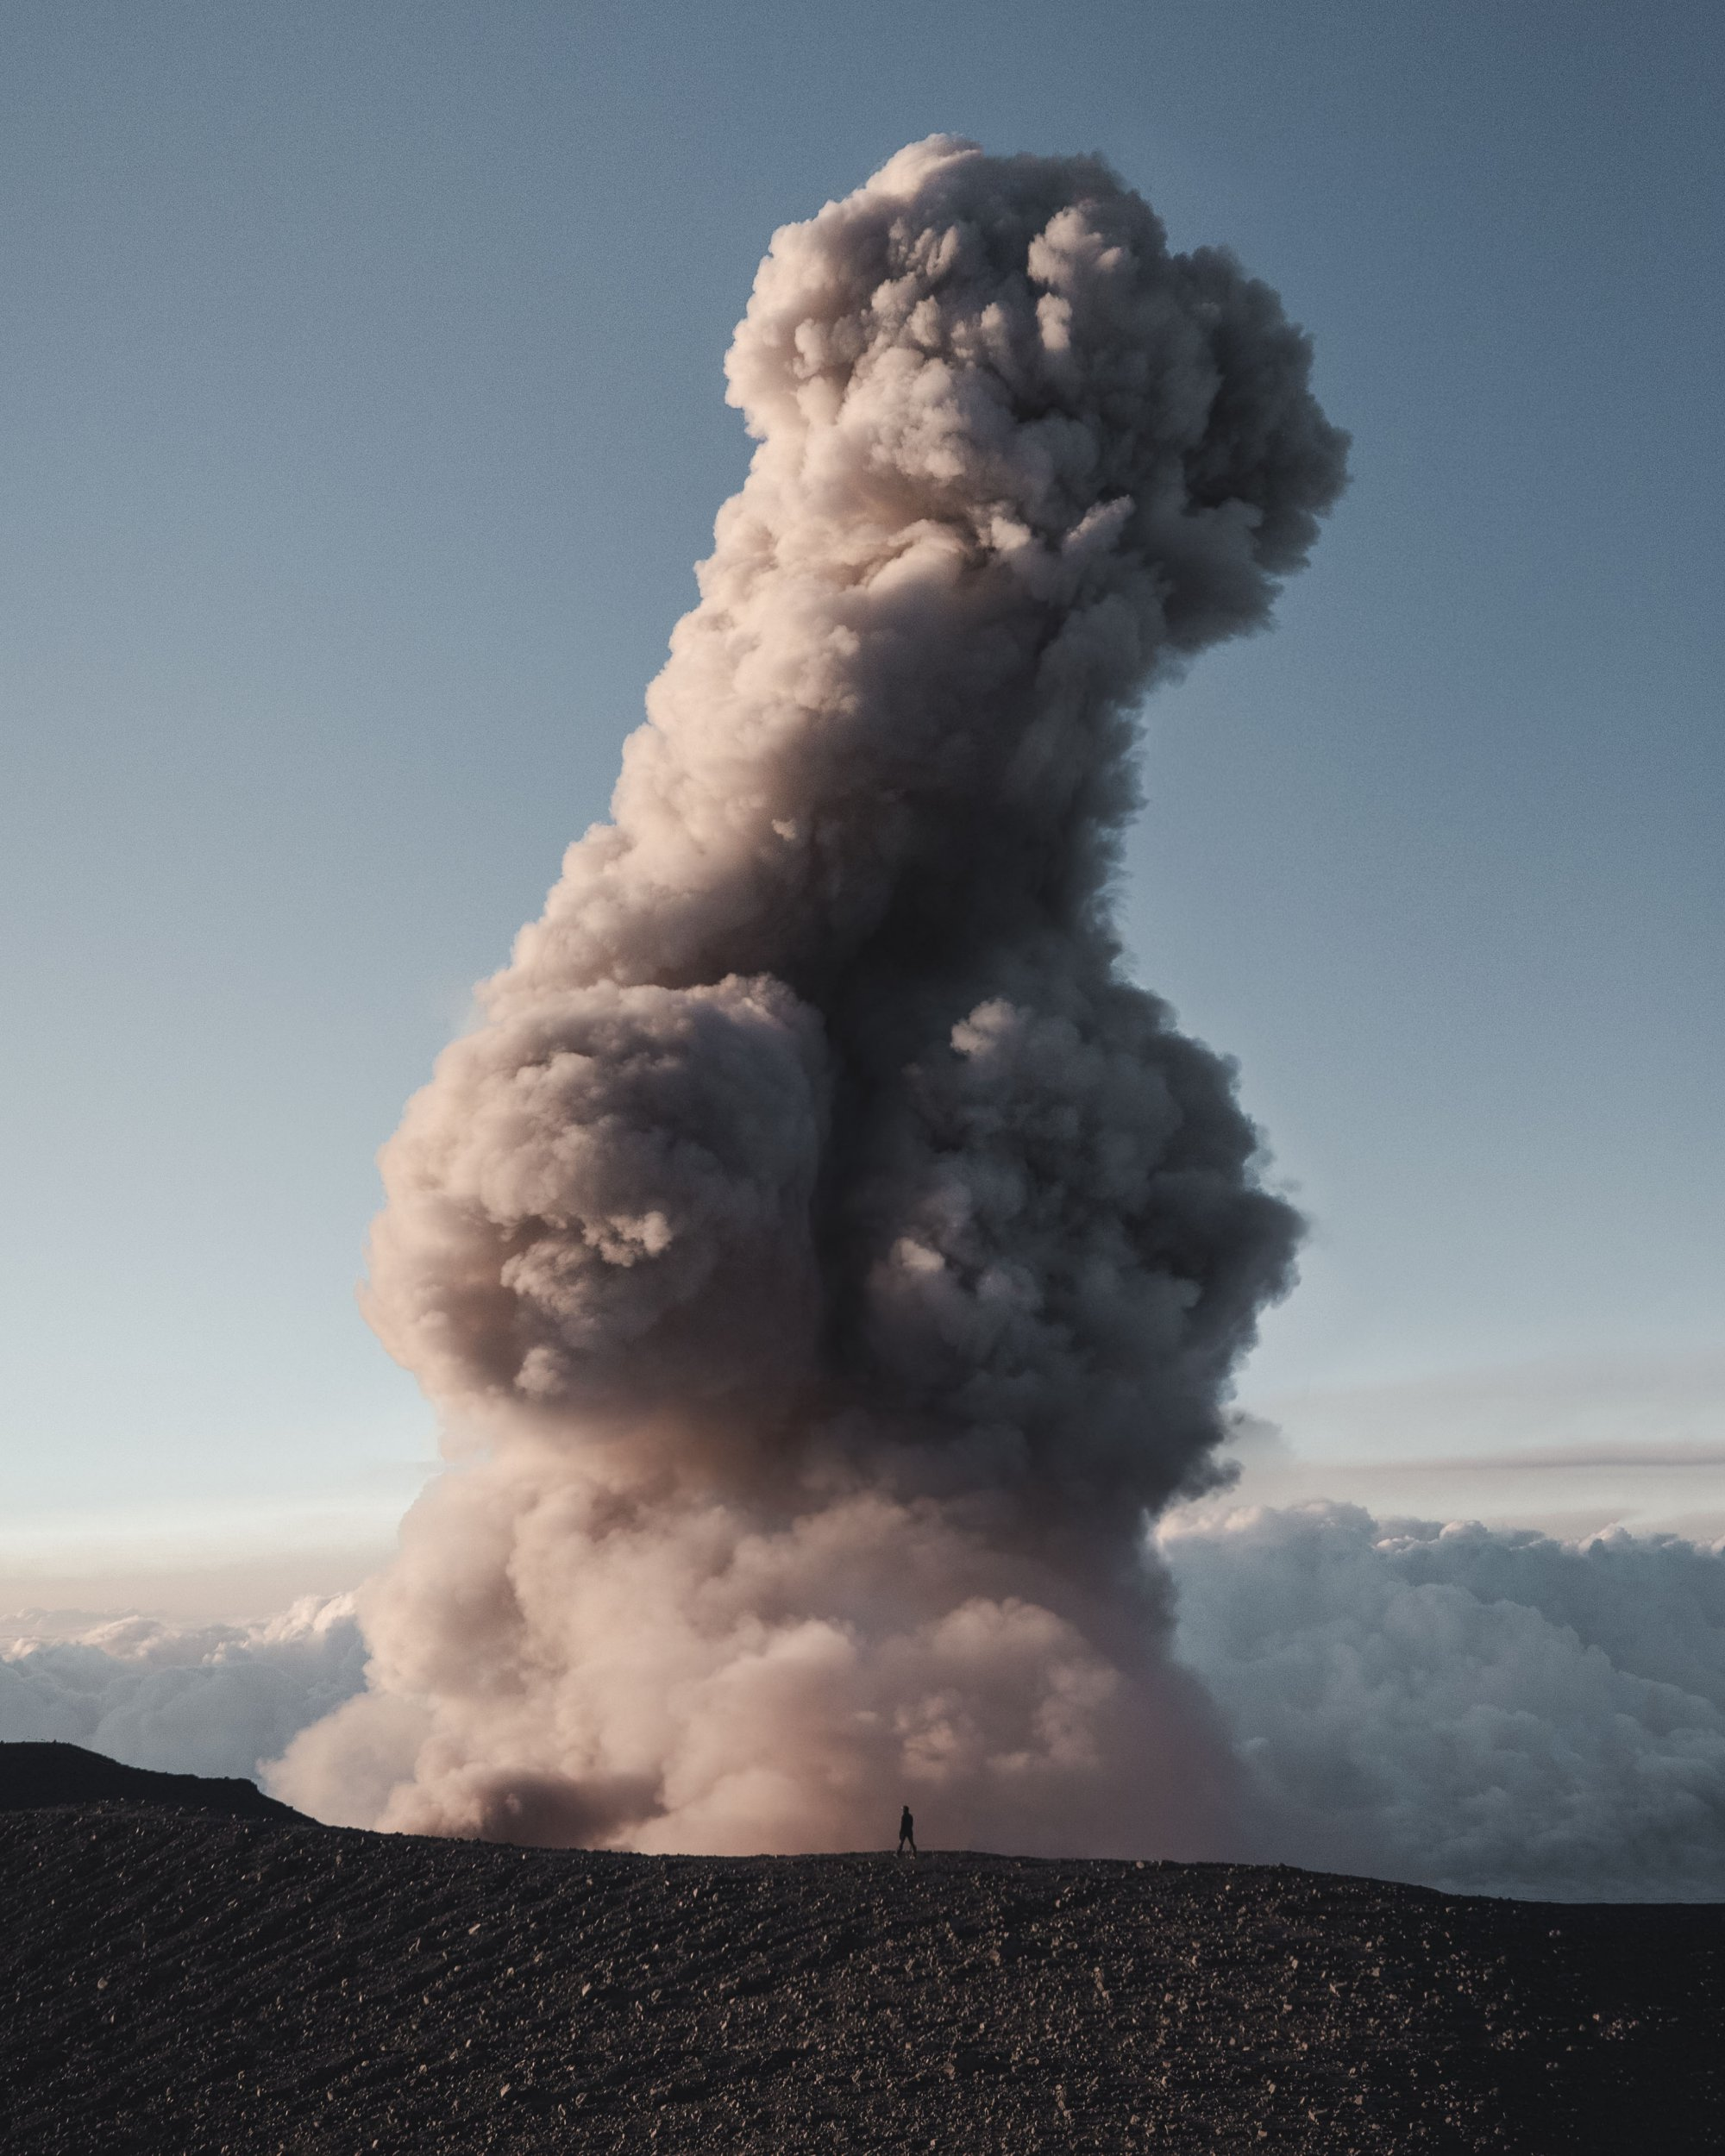 Pic by Josiah Gordon/Caters News - (Pictured: Josiah stands in the shadow of the gigantic phallic shaped eruption.) -Two hikers were left red-faced after an Indonesian volcano erupted in the shape of a giant penis. Adventure enthusiast and photographer, Josiah Gordan, 23, was climbing Javas highest active volcano, Semeru, with friend, Megan Hassa when the eruptions began. After a two-day hike to reach the top, Josiah and Megan were admiring the view below, when the lava began spewing into the air only a few hundred feet from where they were standing. But the pairs awe quickly turned to blushes after the smoke cloud quickly transformed into a phallic shape. SEE CATERS COPY.